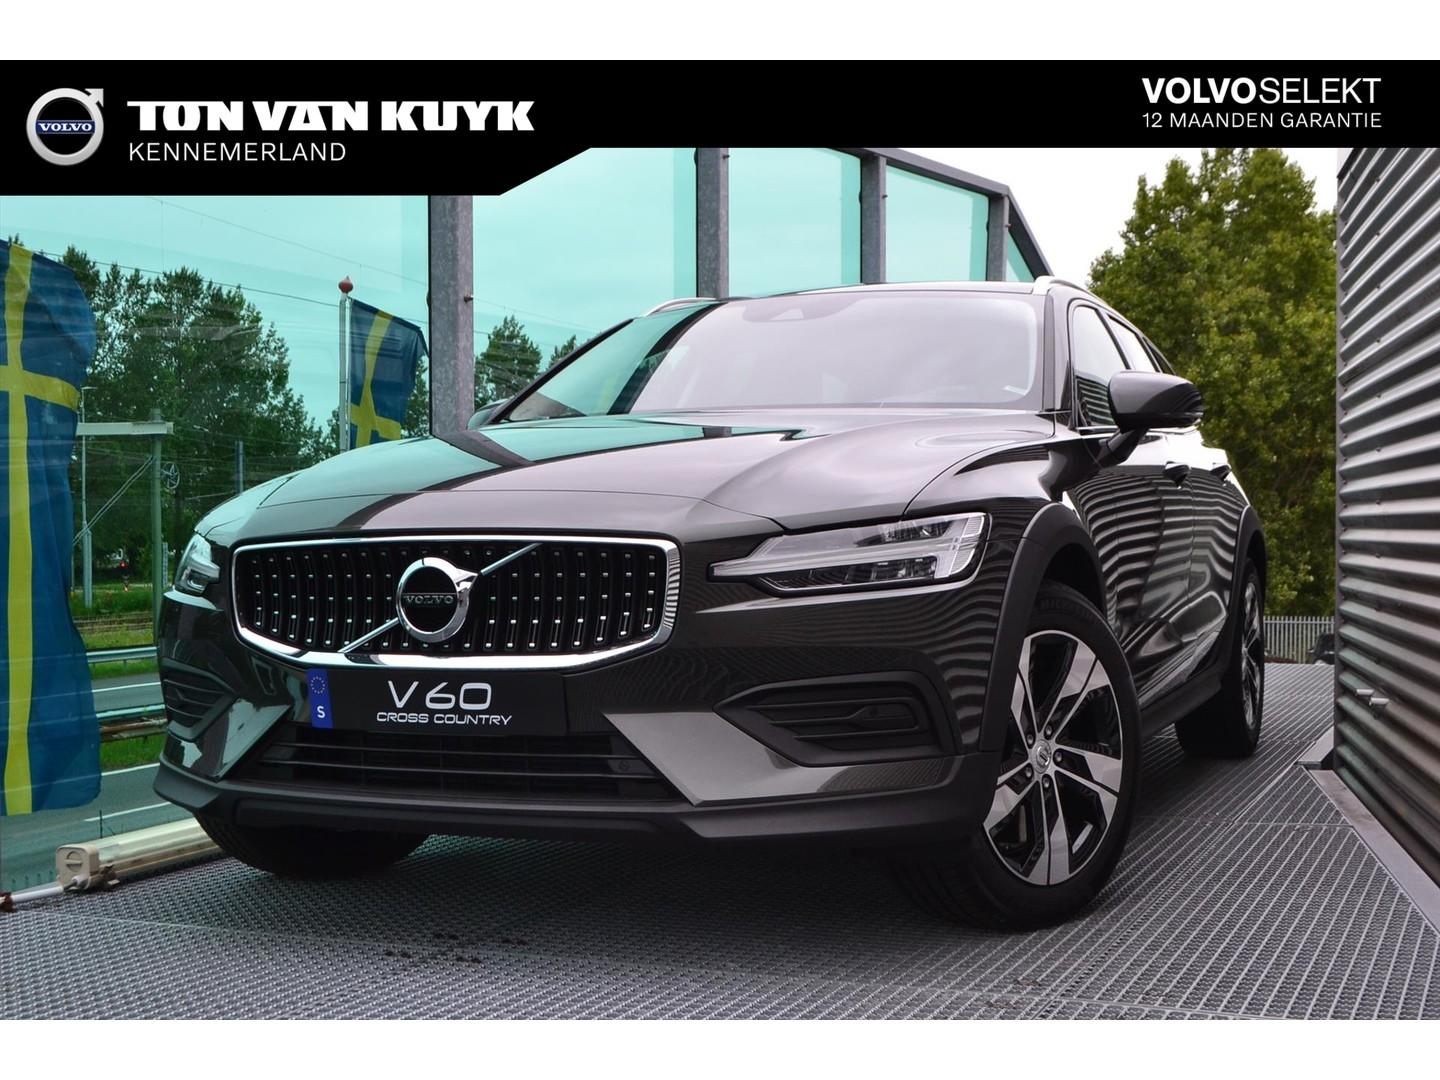 Volvo V60 cross country New t5 awd pro / intellisafe / versat. line / camera